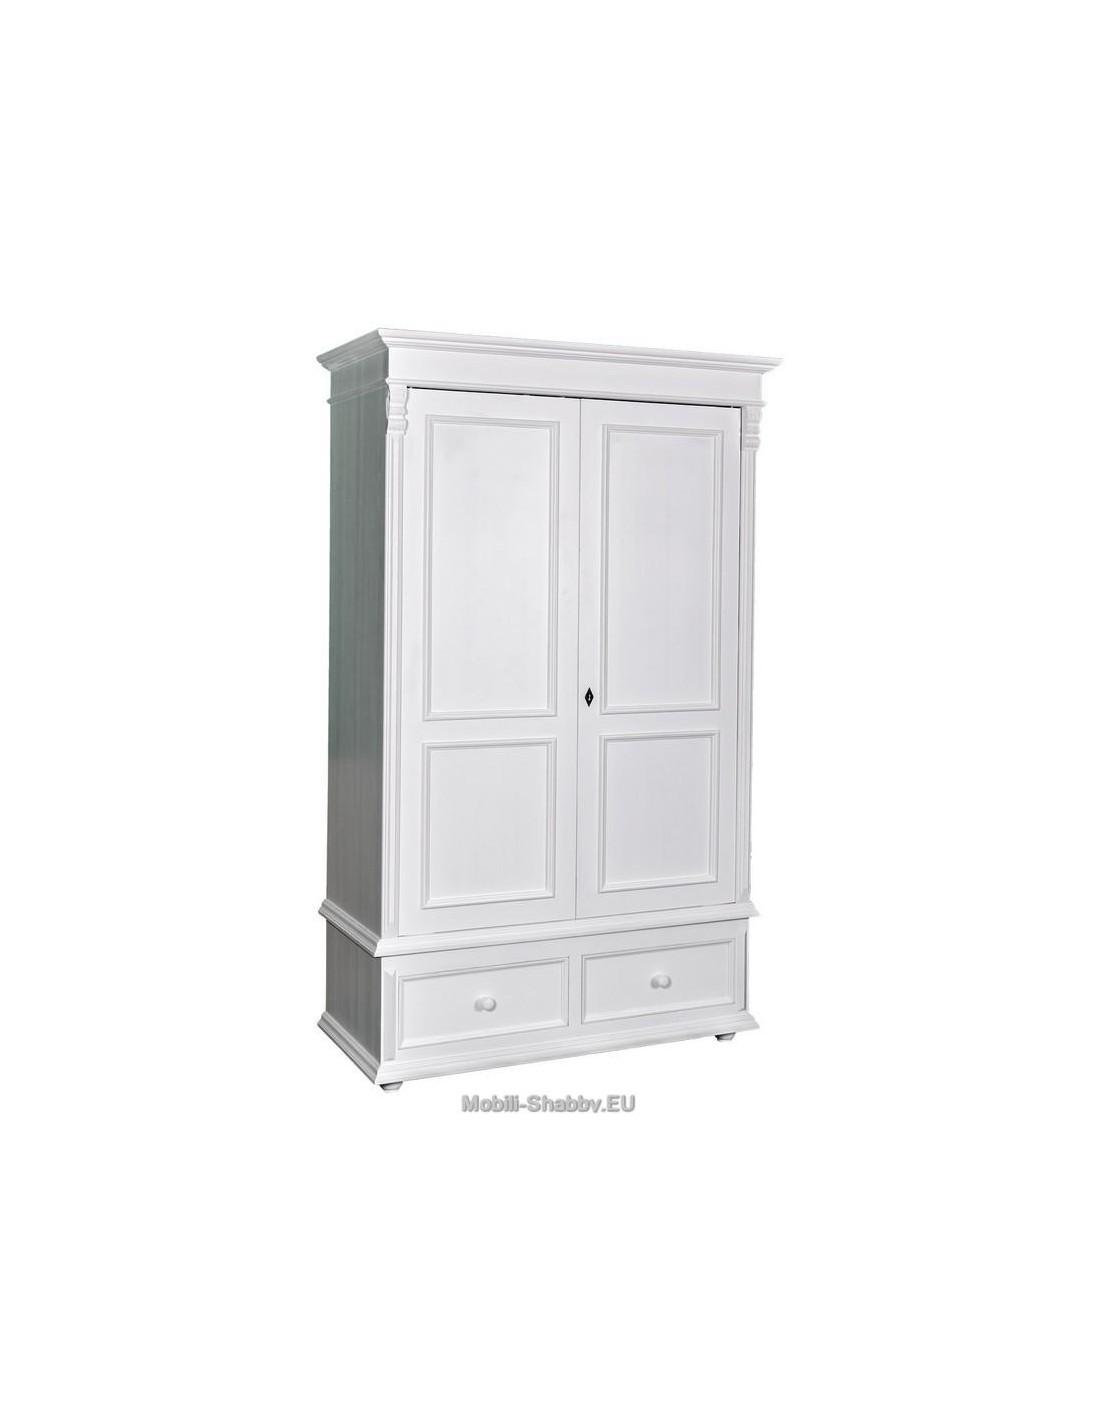 Armadio shabby chic due ante e cassetti ms105 mobili for Armadio shabby ikea